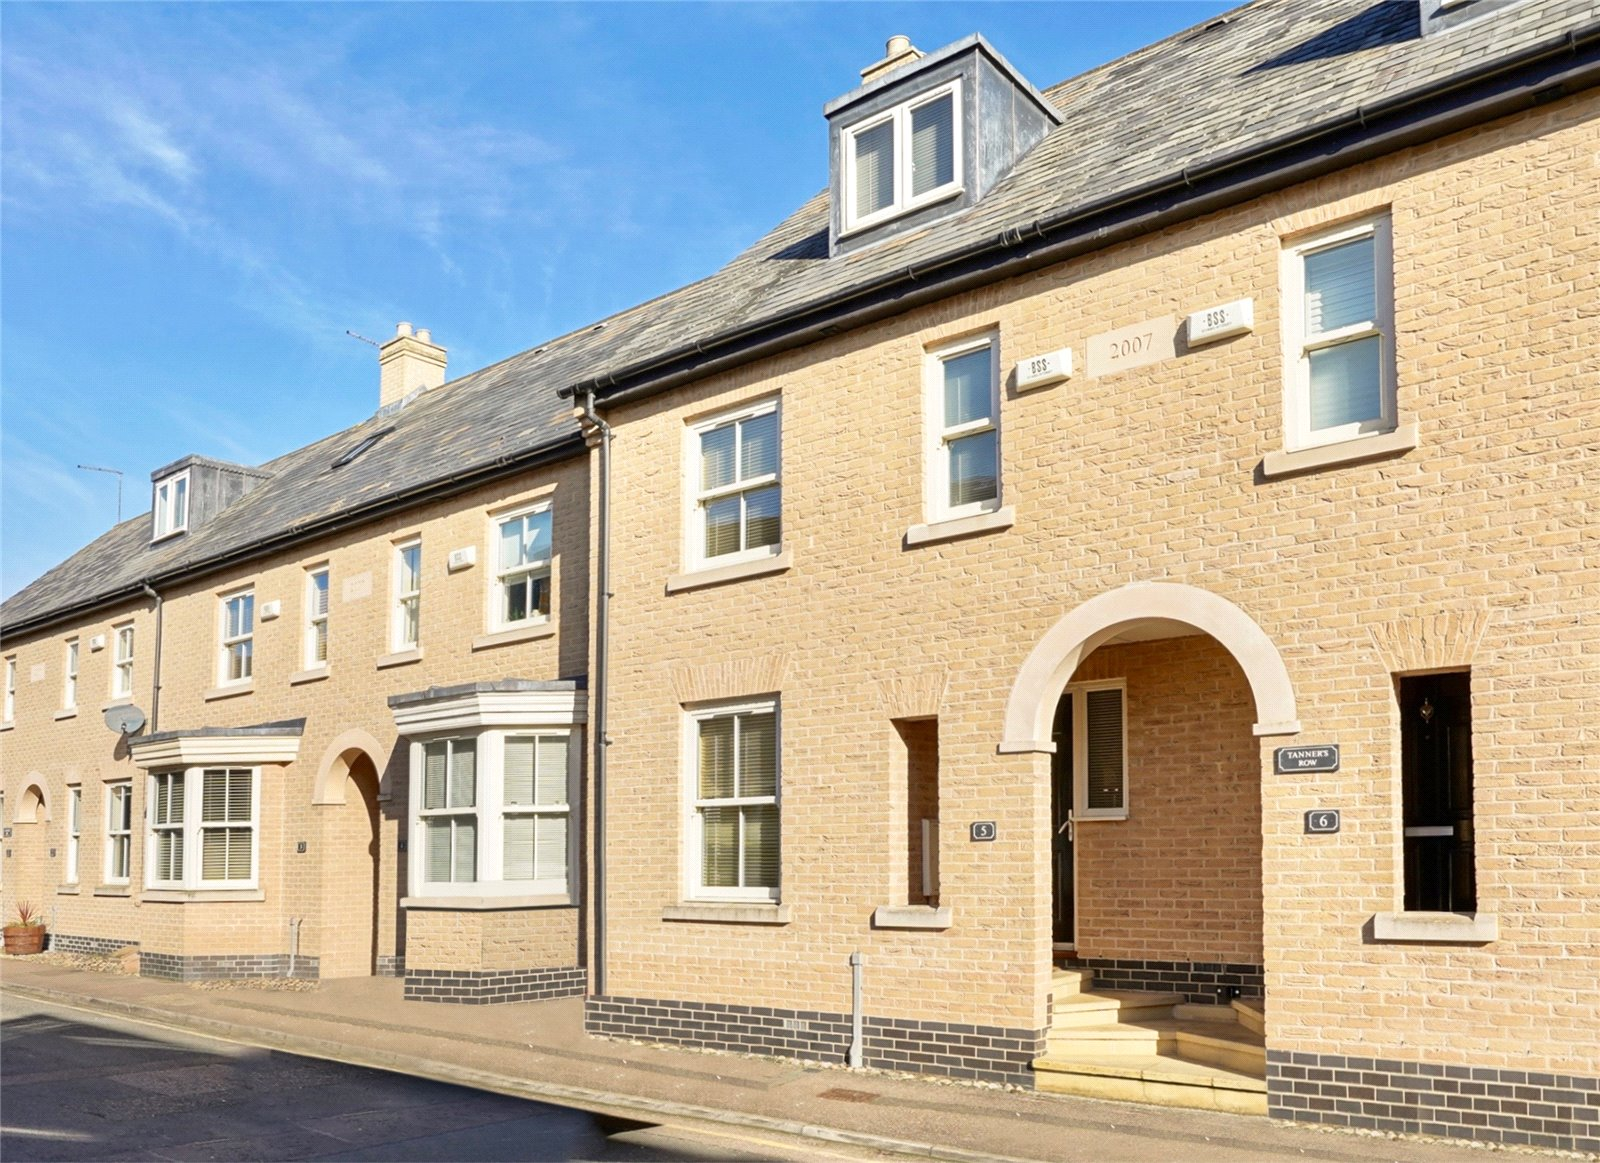 3 bed house for sale in St. Ives, PE27 5RJ  - Property Image 1